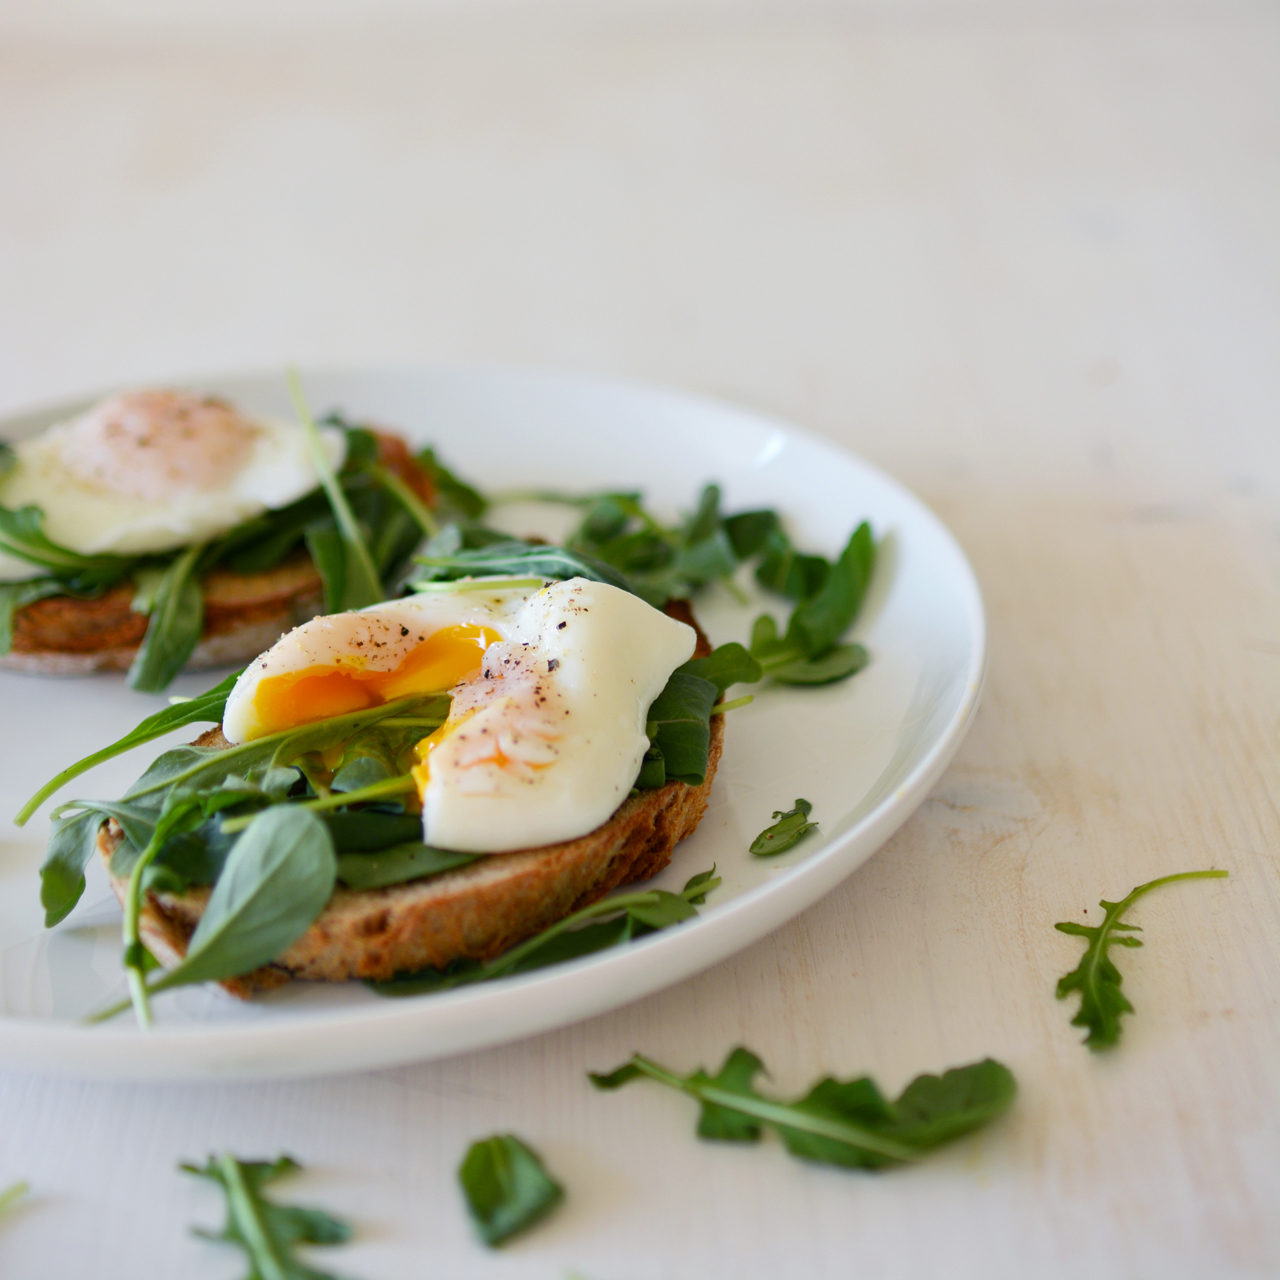 Awesome How Do You Poach An Egg #1: How-to-Poach-an-Egg-Featured-Image.jpg